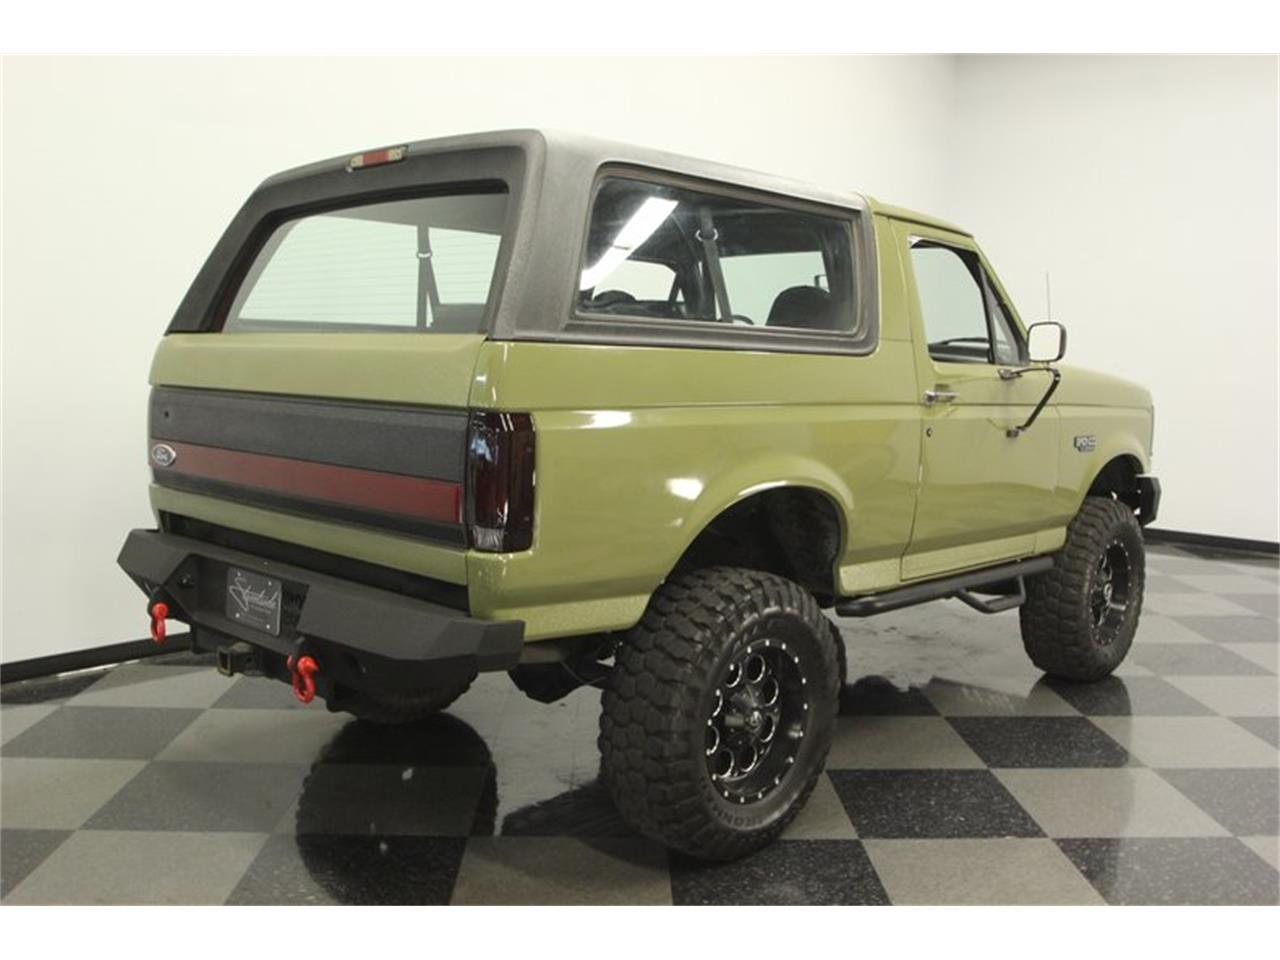 1996 Ford Bronco for sale in Lutz, FL – photo 27